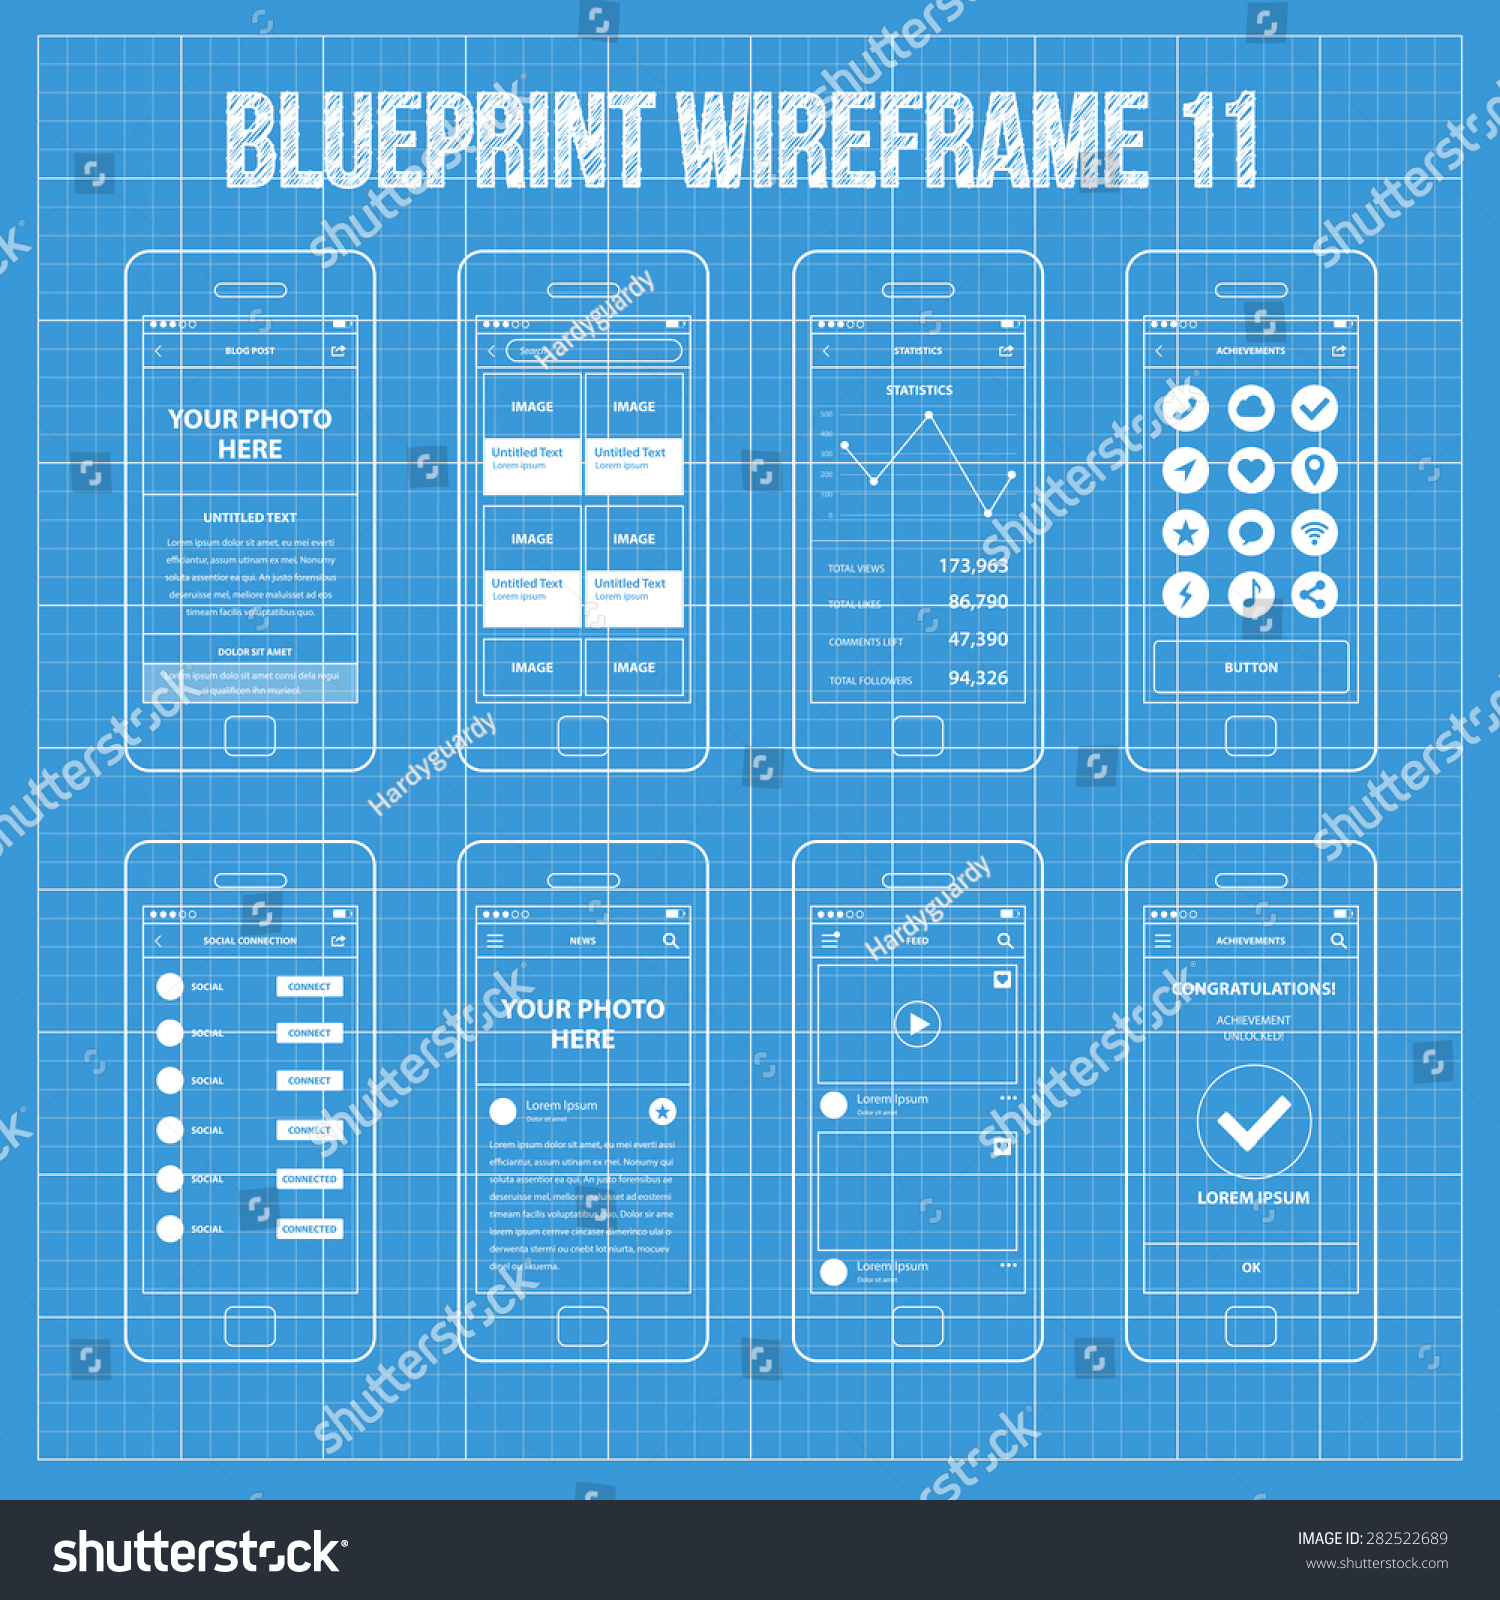 Mobile app wireframe ui kit 11 stock vector 282522689 shutterstock mobile app wireframe ui kit 11 blog post screen image gallery post screen malvernweather Images